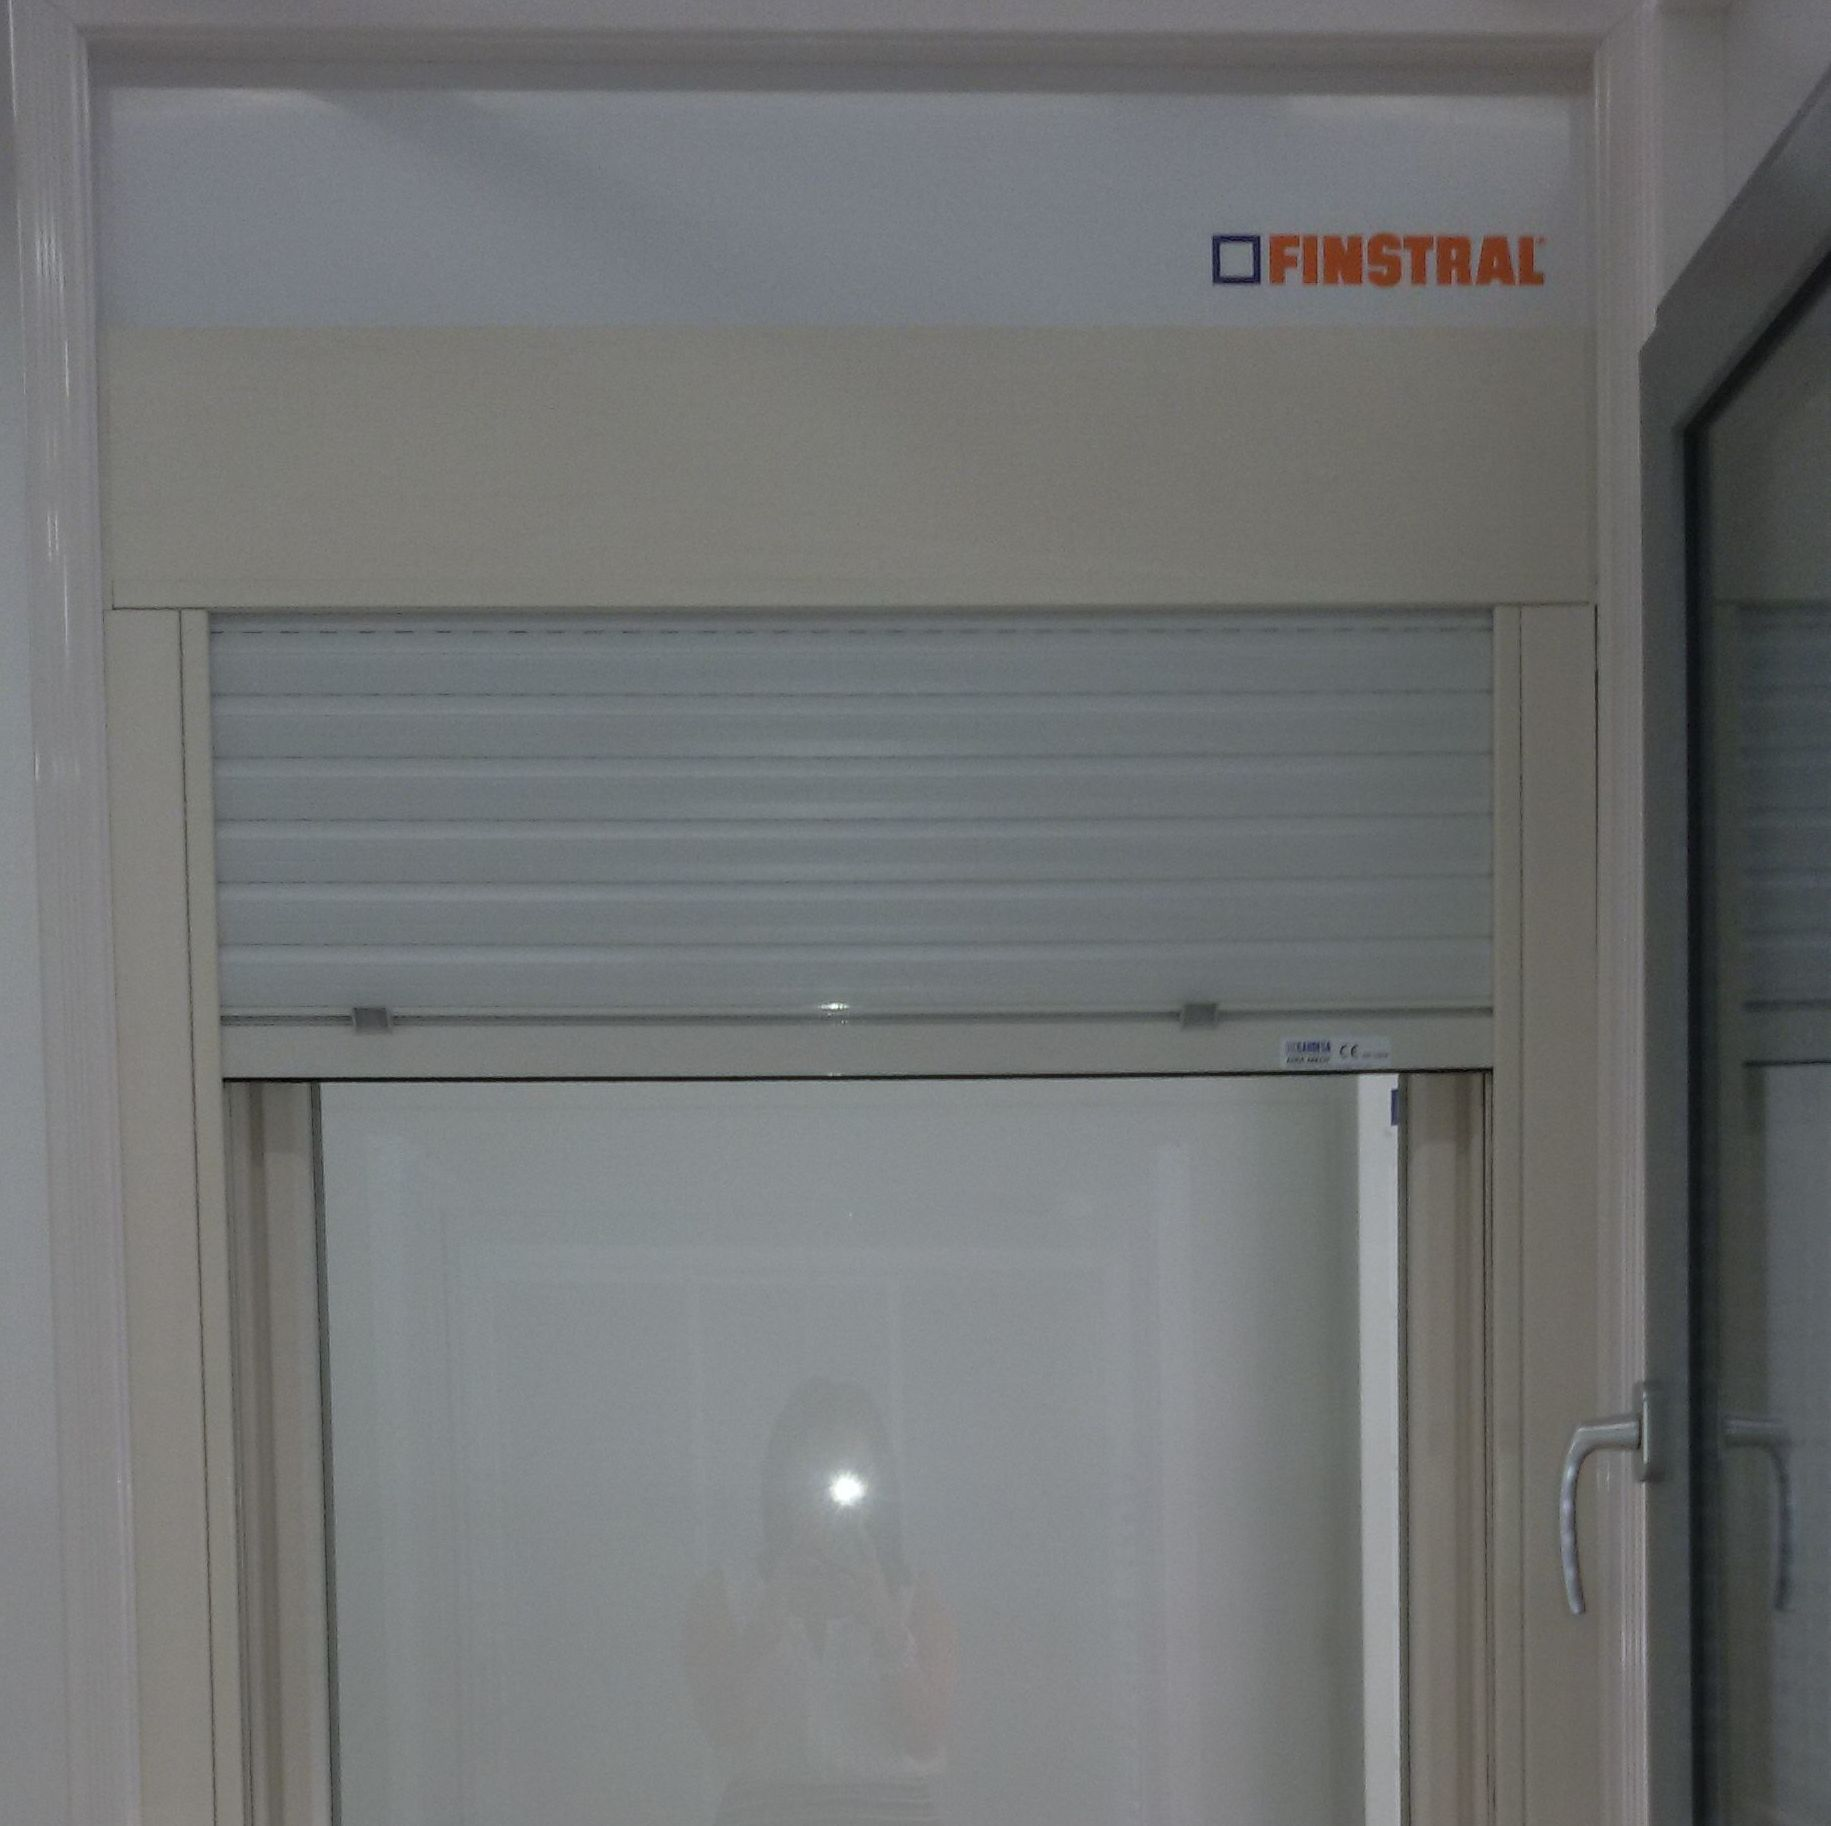 Ventana de PVC color blanco antiguo con persiana integrada